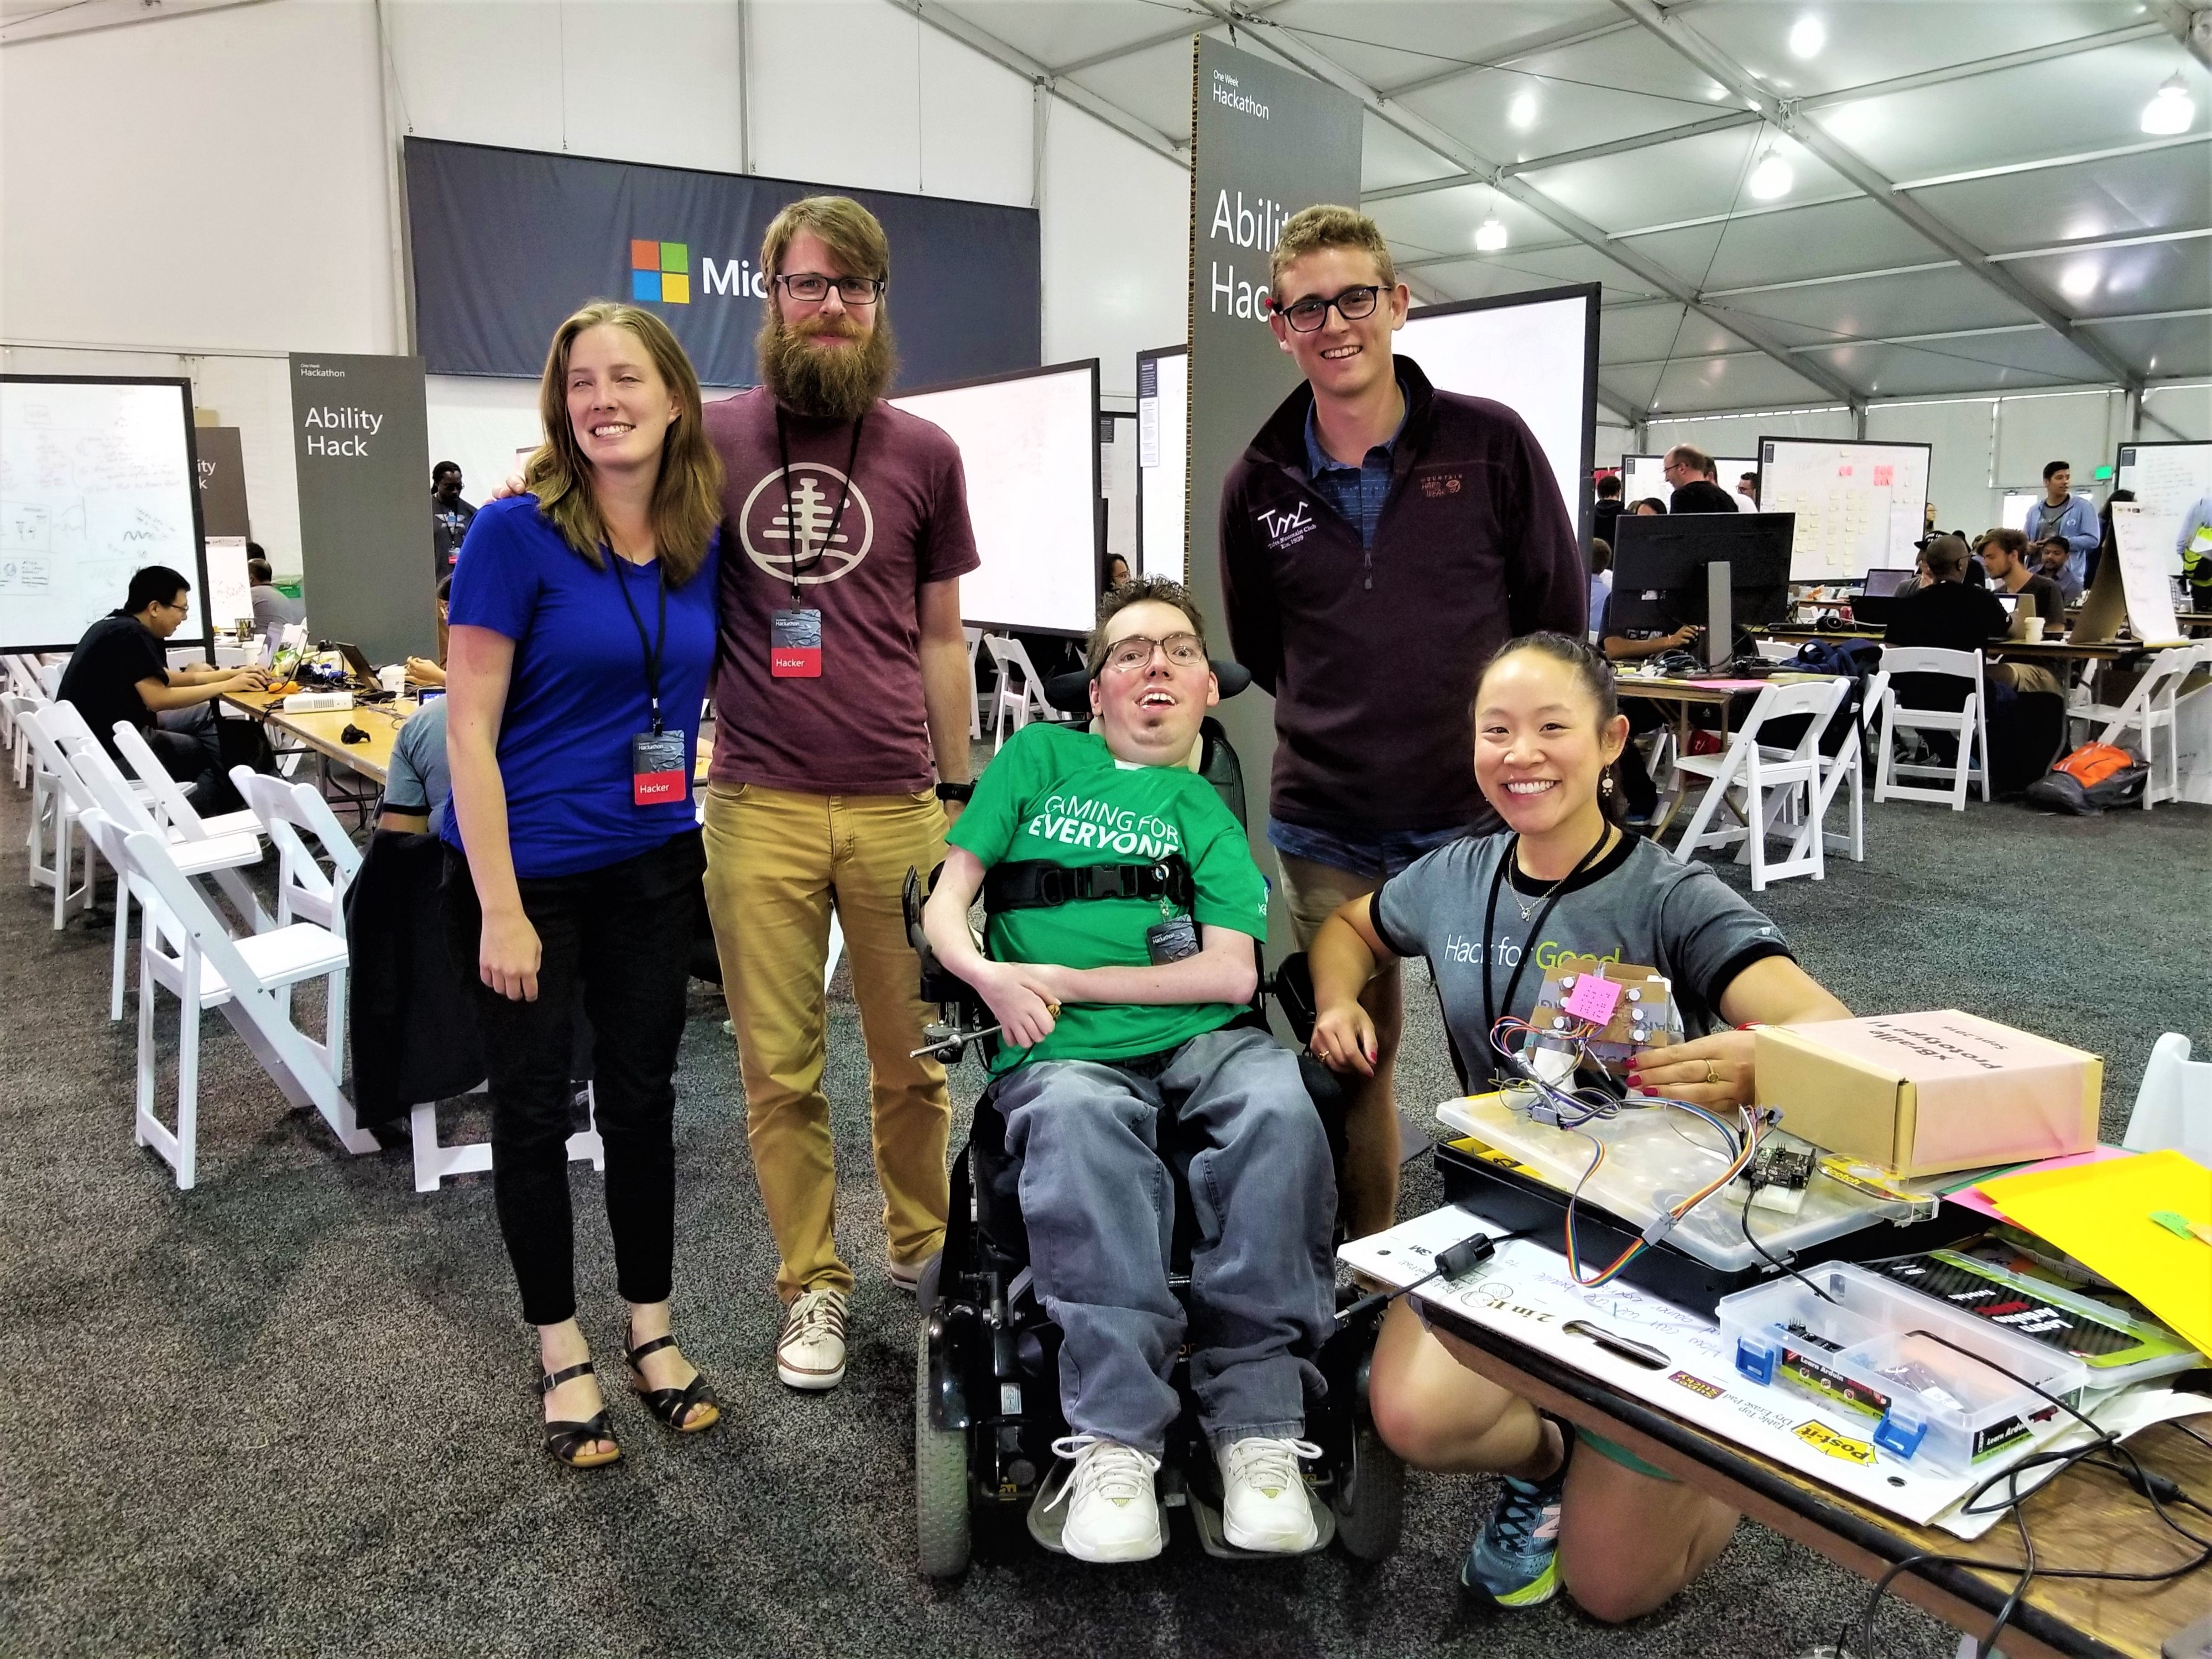 Inside the Hackathon tent, a team of five researchers, designers, and engineers pose with a prototype, all smiles.